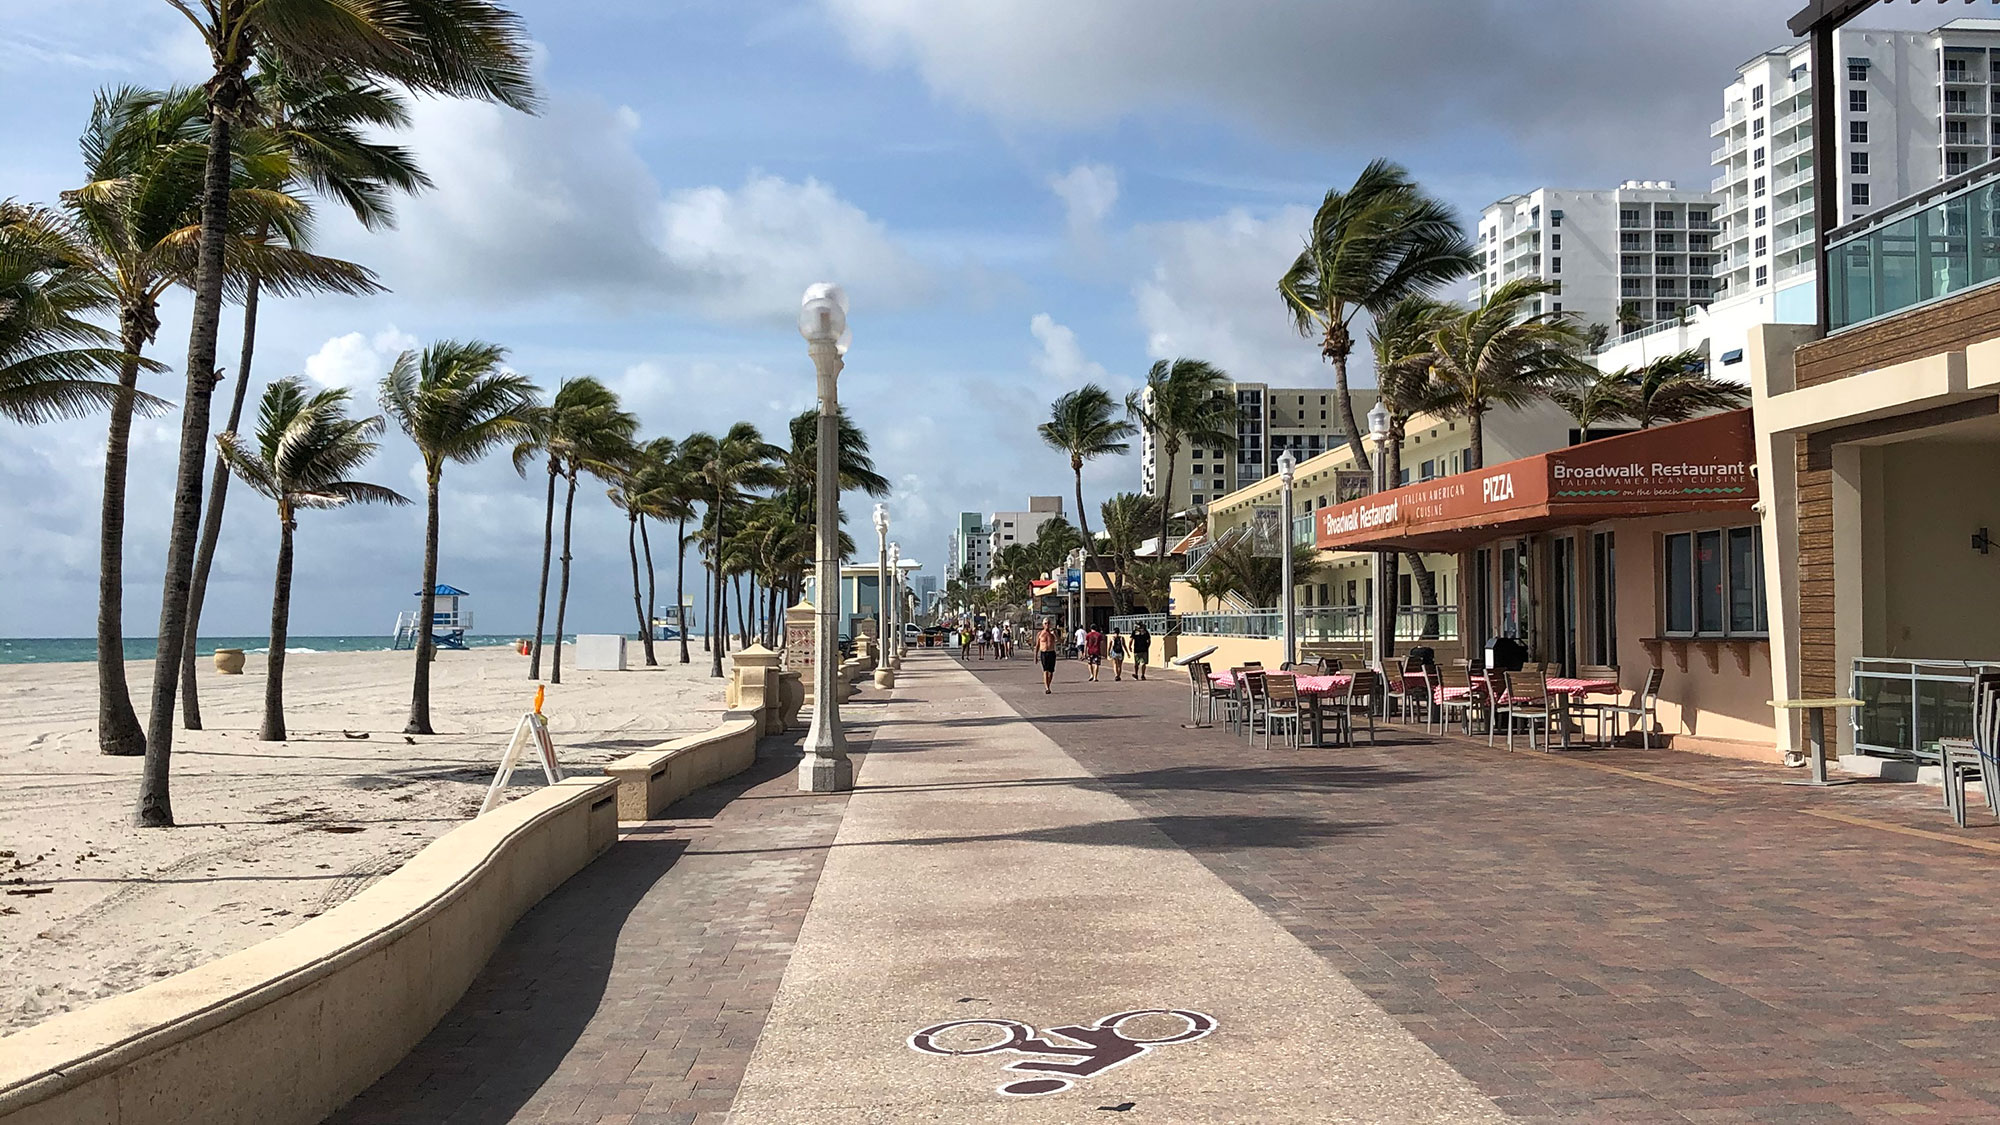 Wading into an uncertain summer season on Hollywood Beach